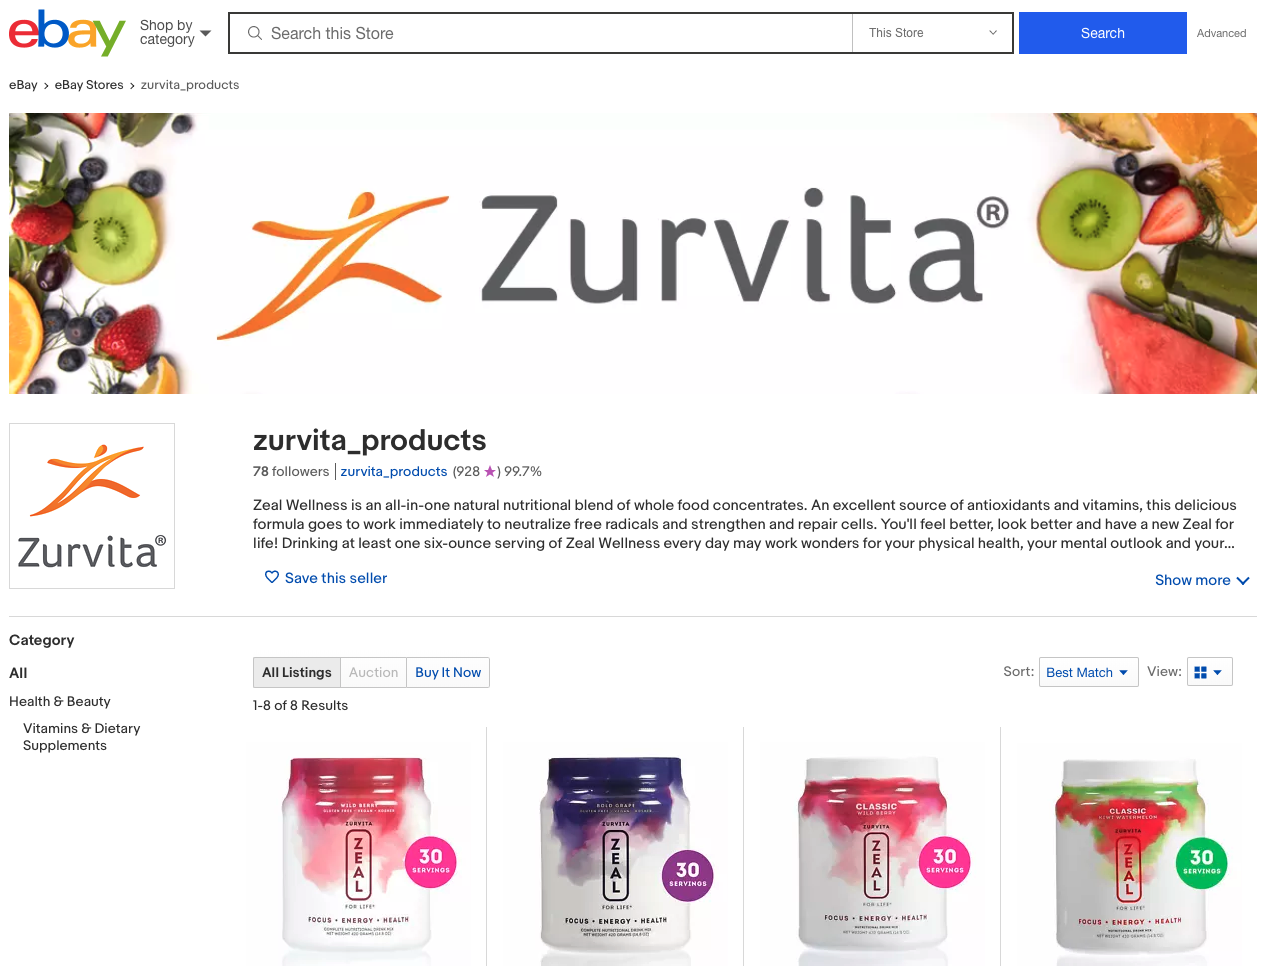 Zurvita's customized eBay storefront helps enhance their brand thanks to Pattern's eBay and content experts.